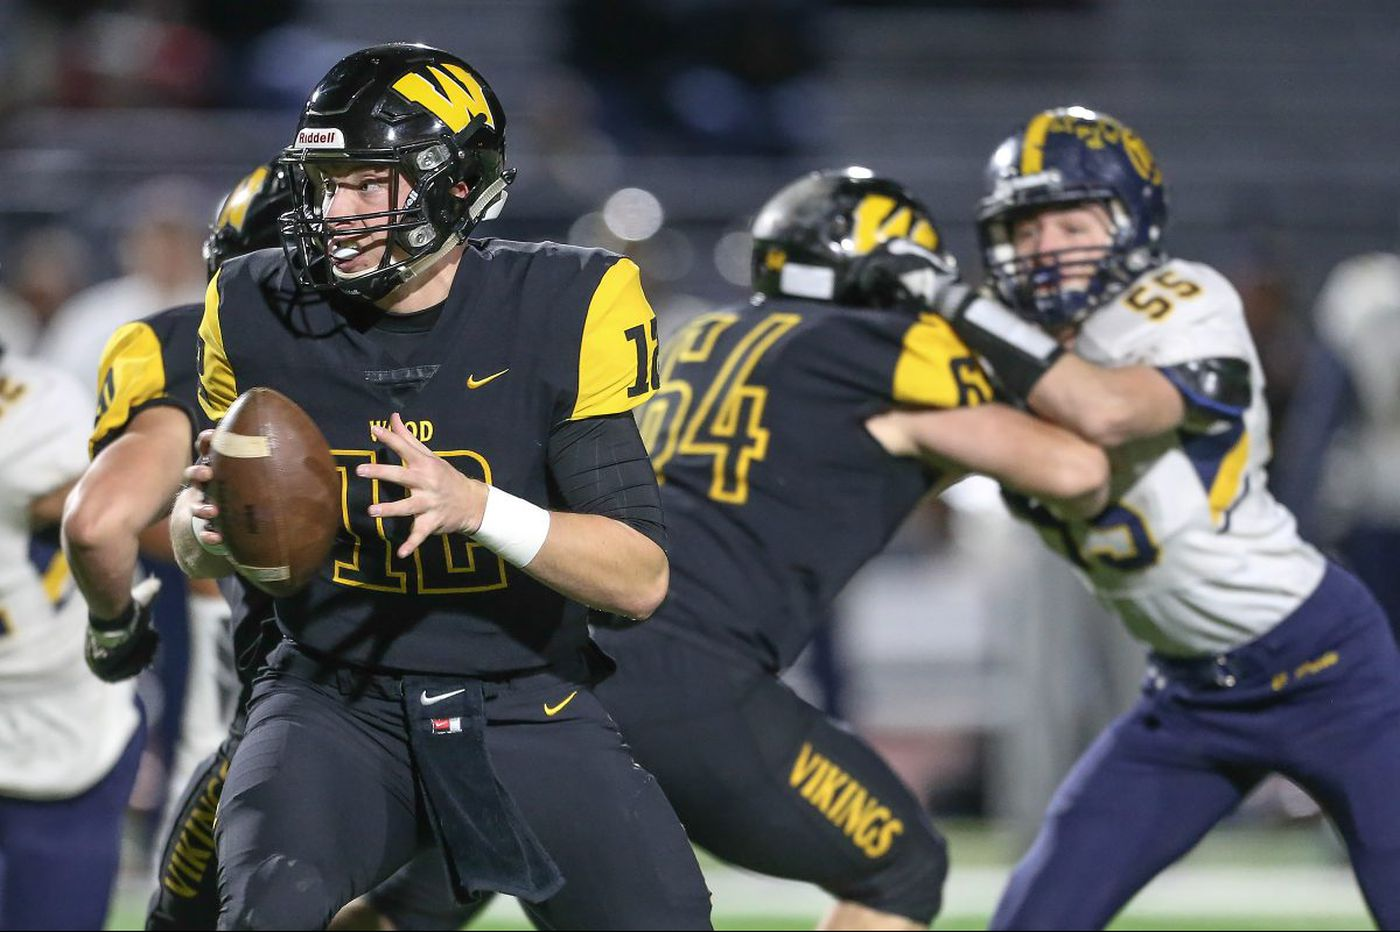 Catholic League sets up football rivalry with North Jersey foes